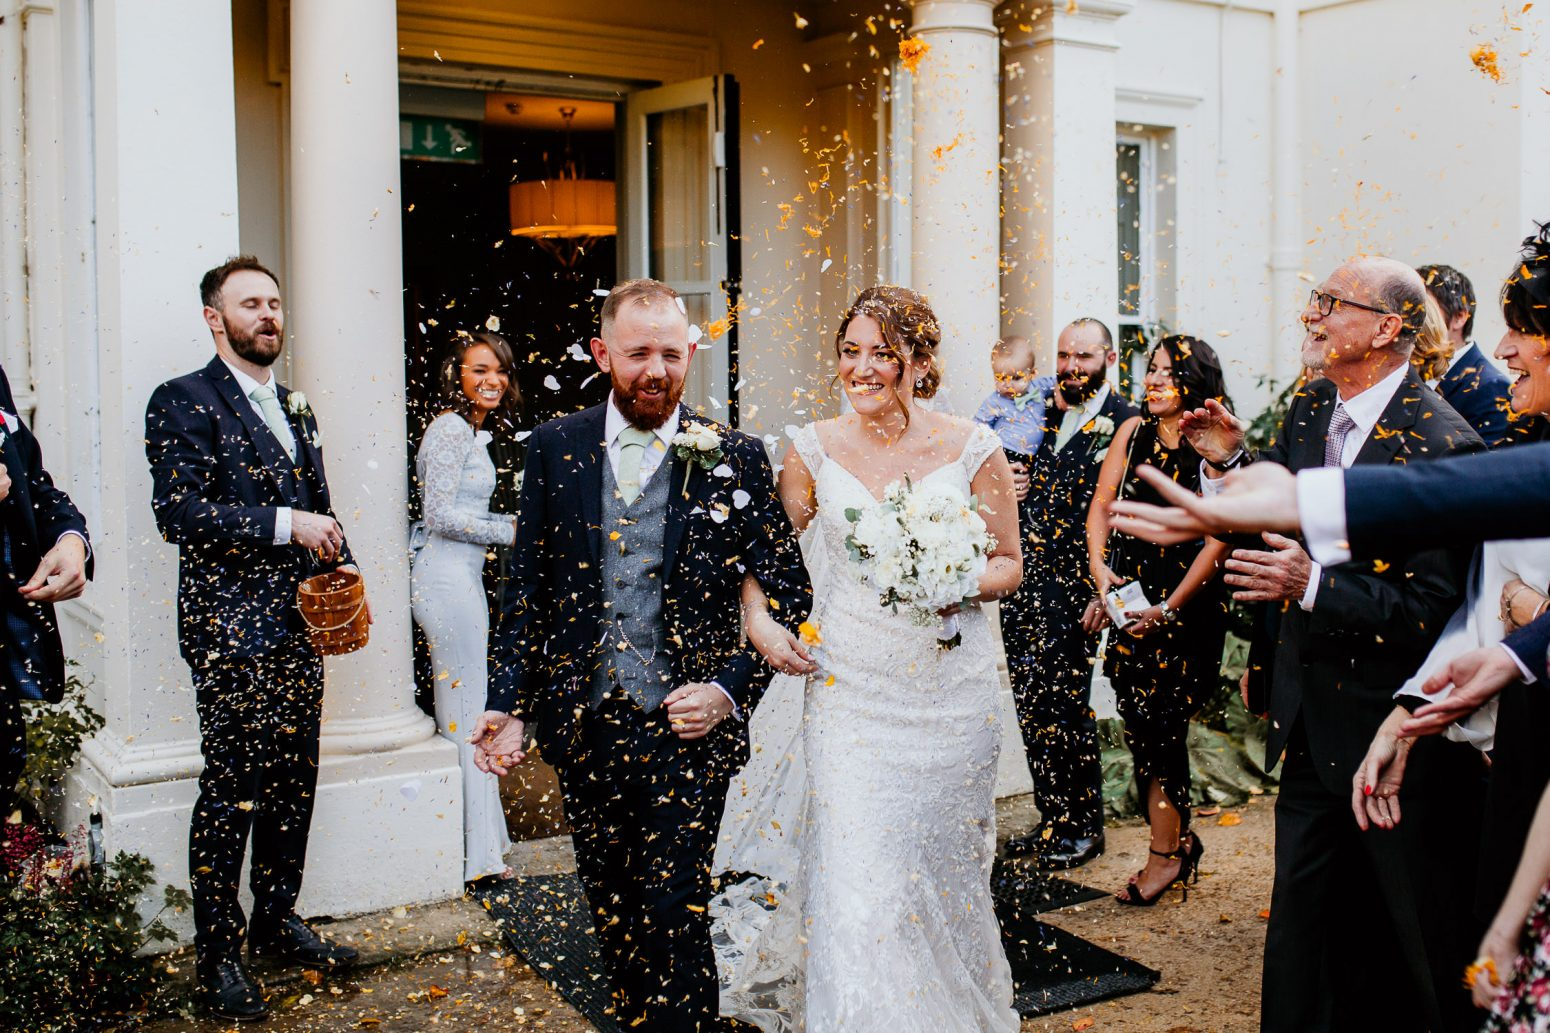 bride in embroidered wedding dress and groom in luxurious suit with green tie and white rose buttonhole walk arm in arm under falling confetti surrounded by smiling wedding guests